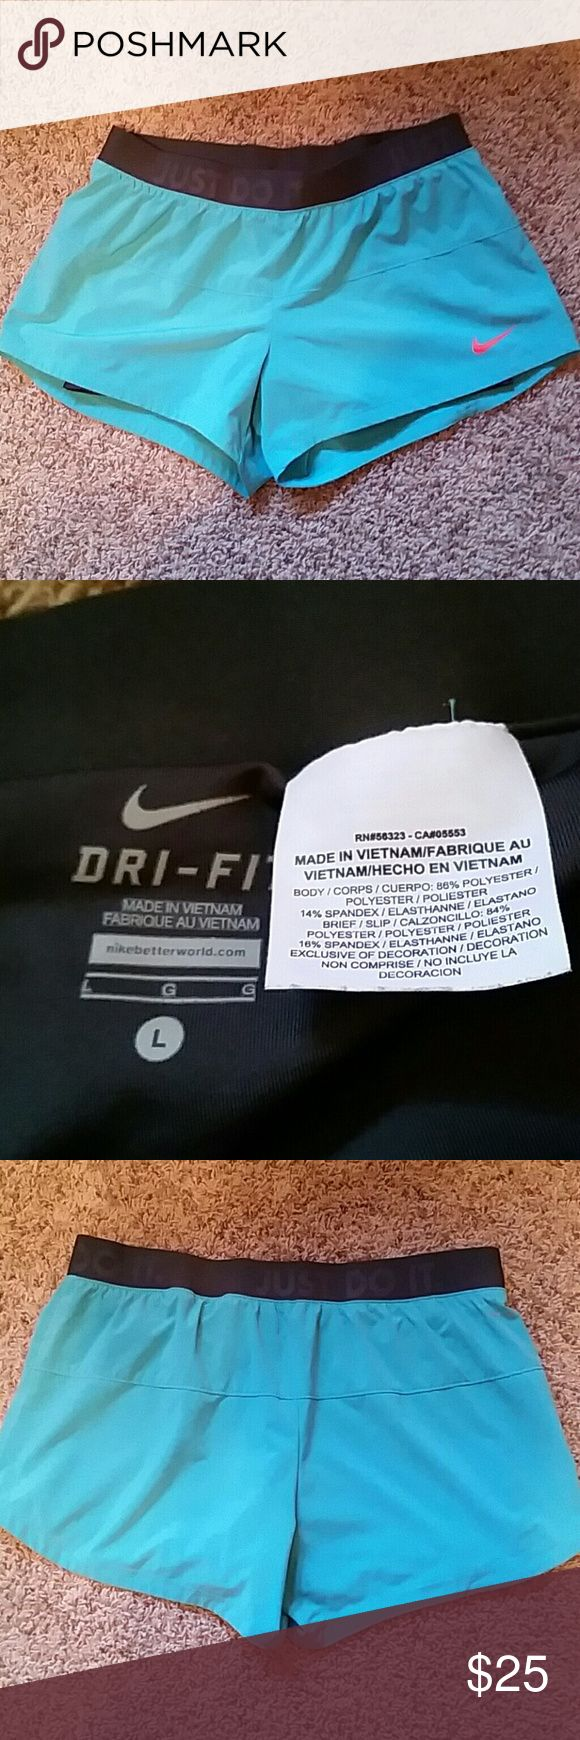 """*NWOT 2 in 1 Nike size L Dri-Fit teal shorts *NWOT 2 in 1 Nike size L Dri-Fit teal shorts. Shorts contain grey attached spandex underneath. Grey waistband states nike saying: """"just do it"""". Was given these as a gift and sadly outgrew them before wearing them. Perfect for running! These shorts are a great buy in excellent condition! :) Nike Shorts"""